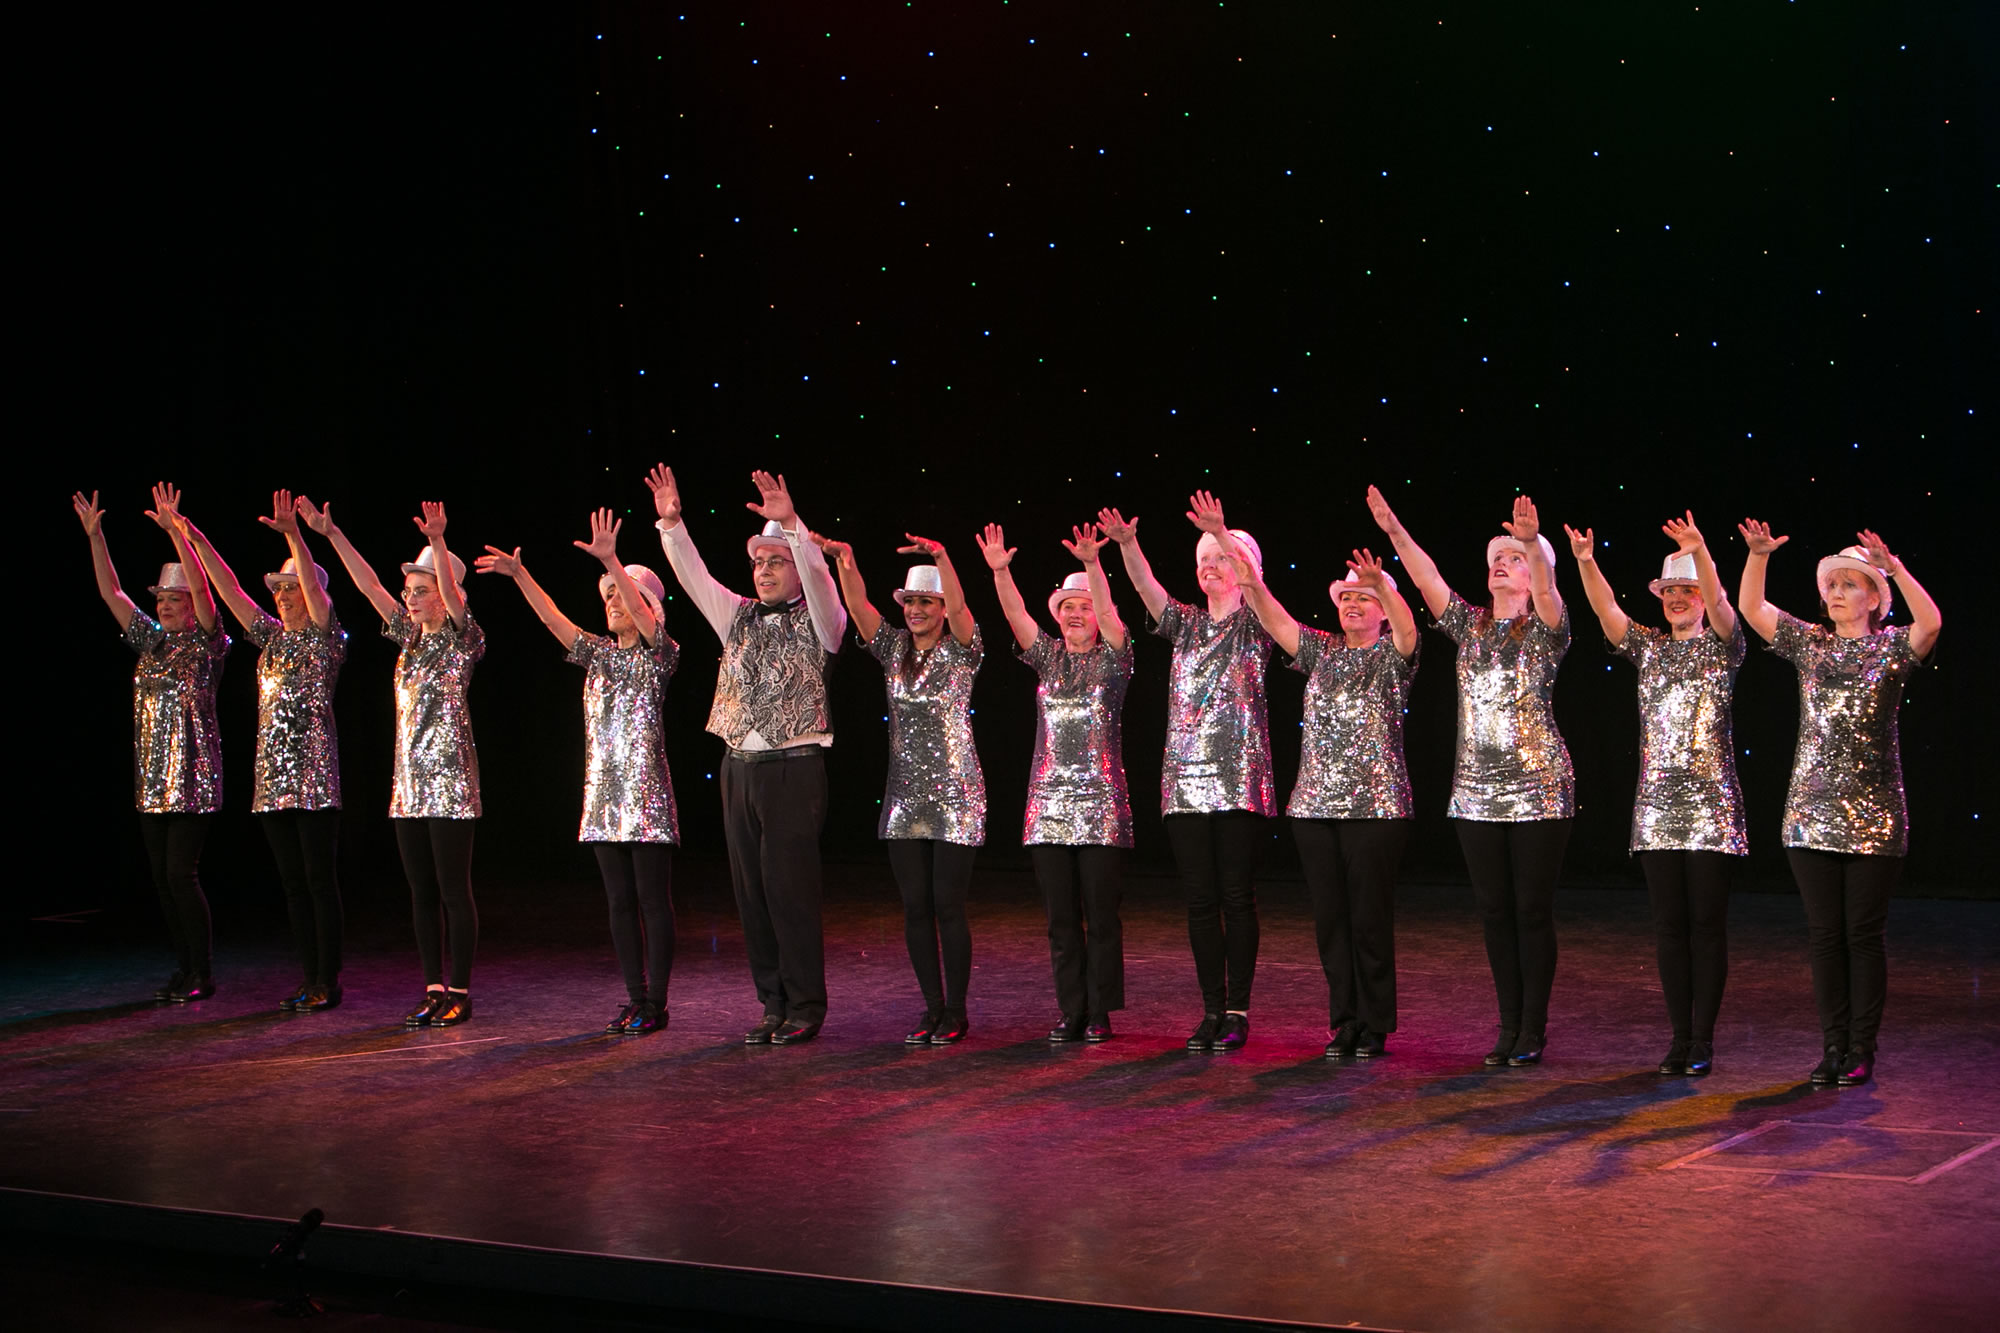 Hitchin_School_of_Dance_Show_2019-SM1_2992.jpg